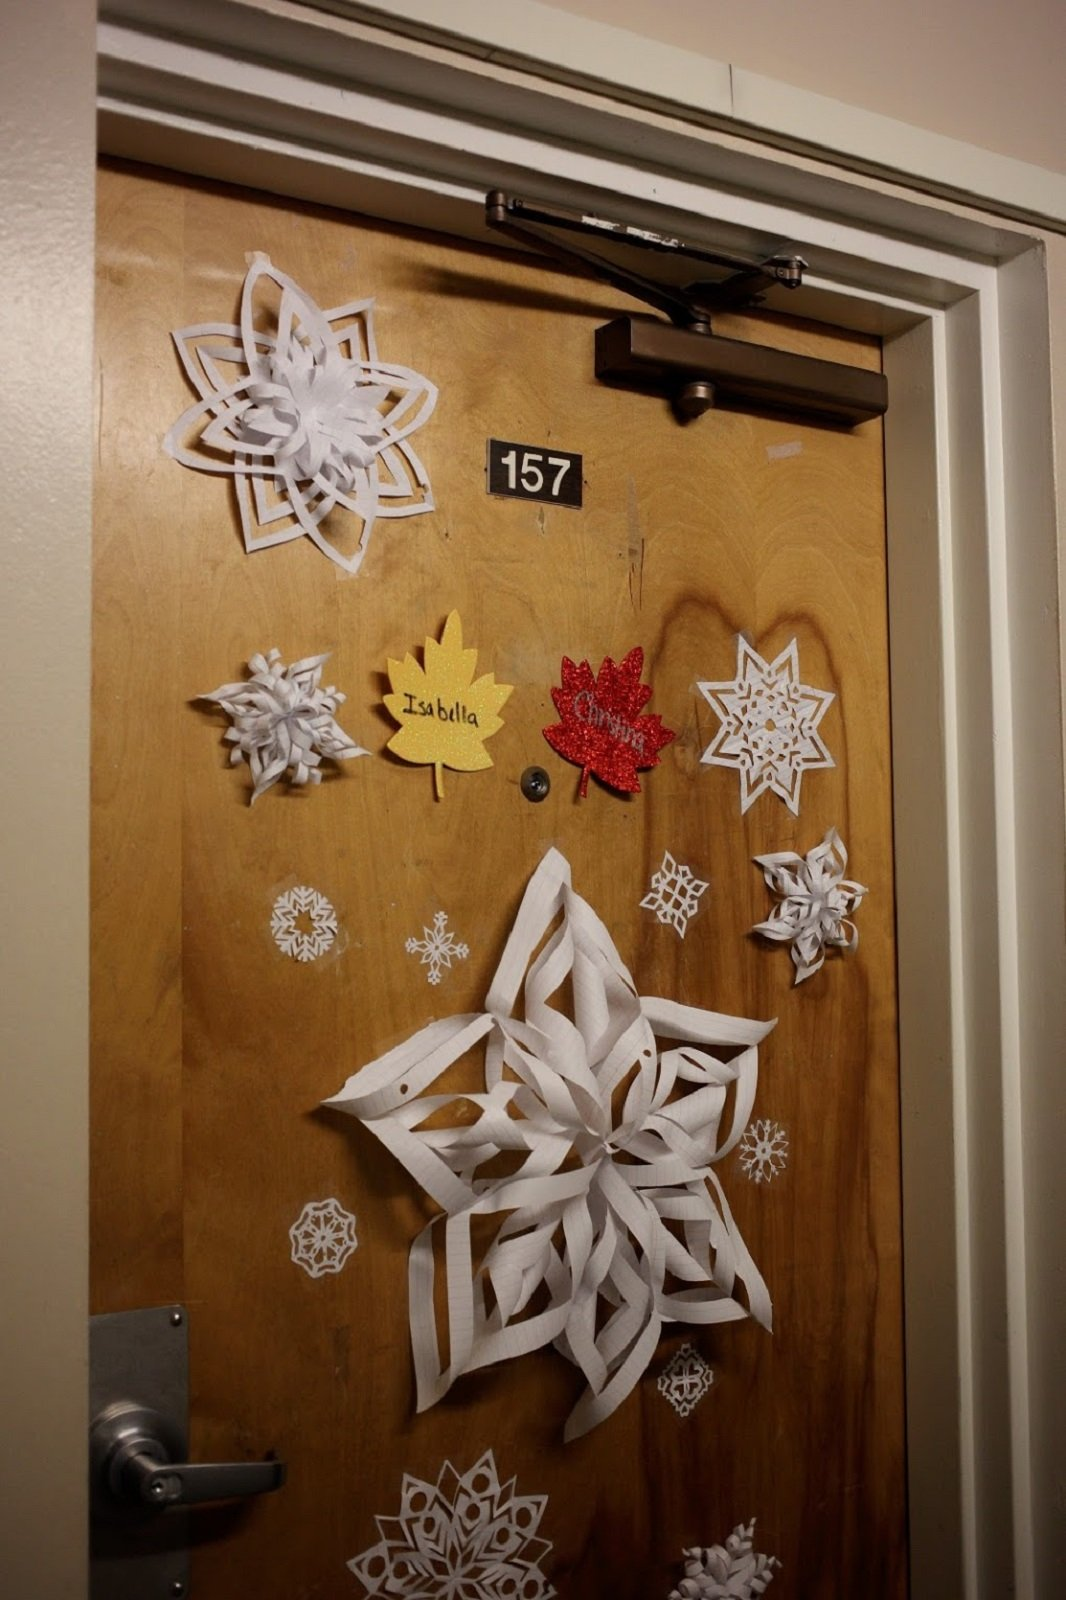 paper snowflake decorations on the door of residents in Chestnut Hall.